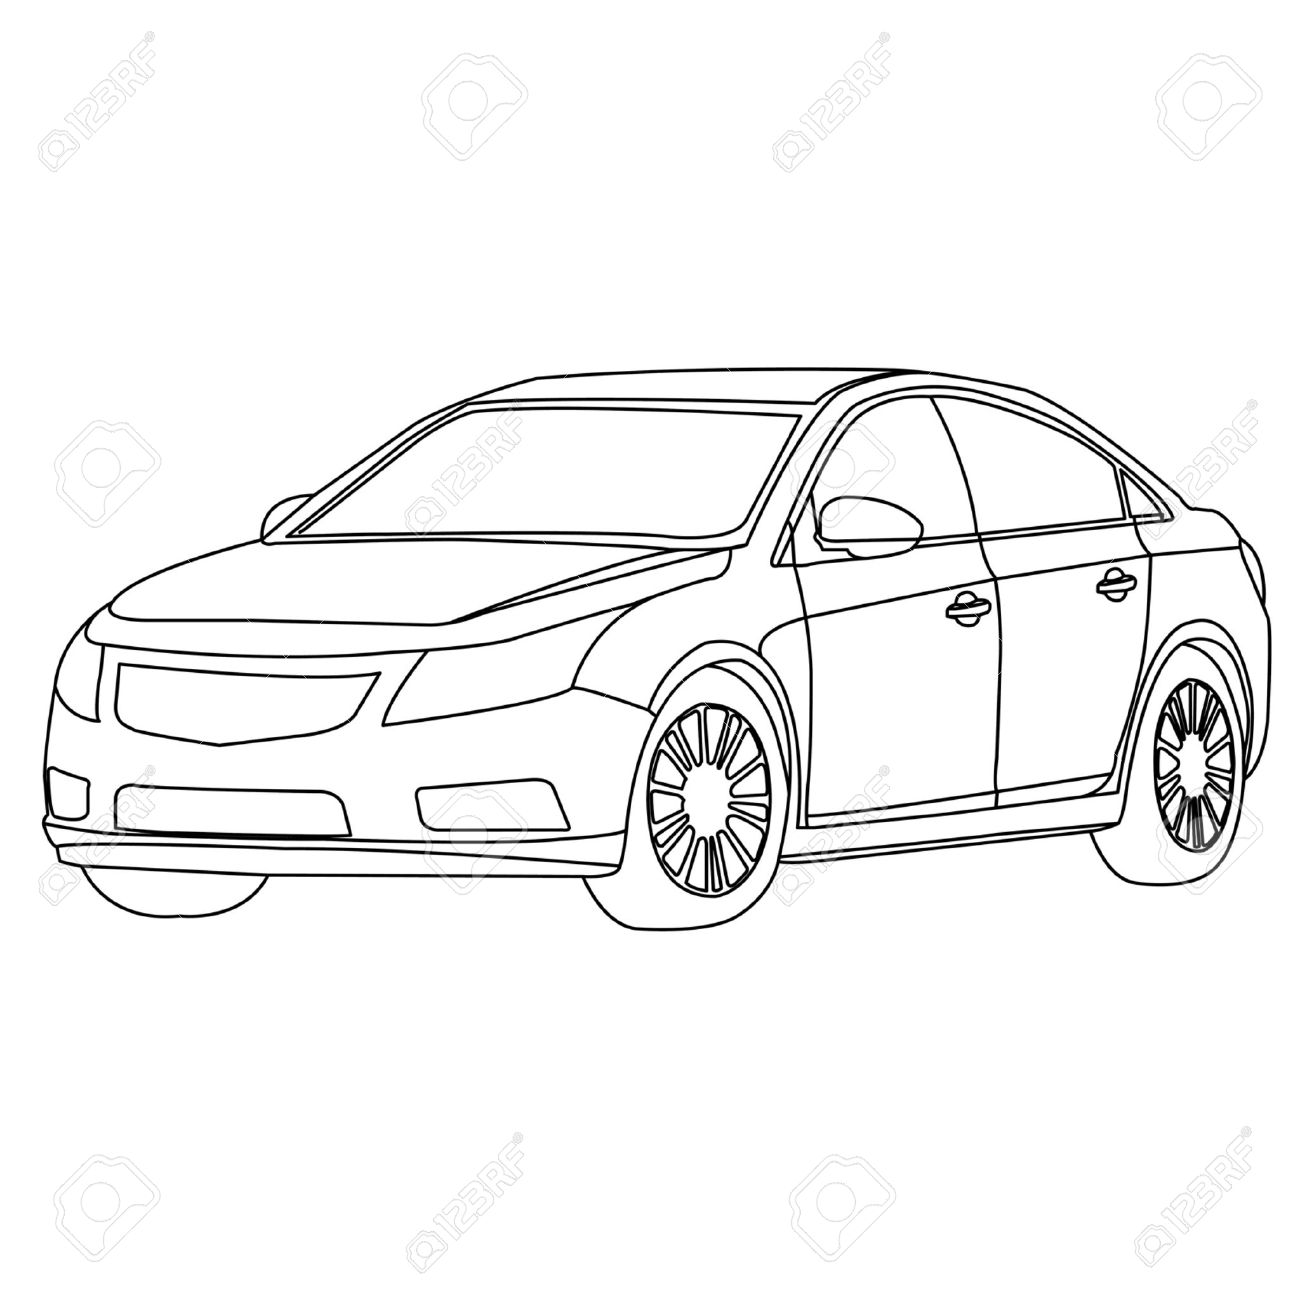 1300x1300 Car Outline Royalty Free Cliparts, Vectors, And Stock Illustration